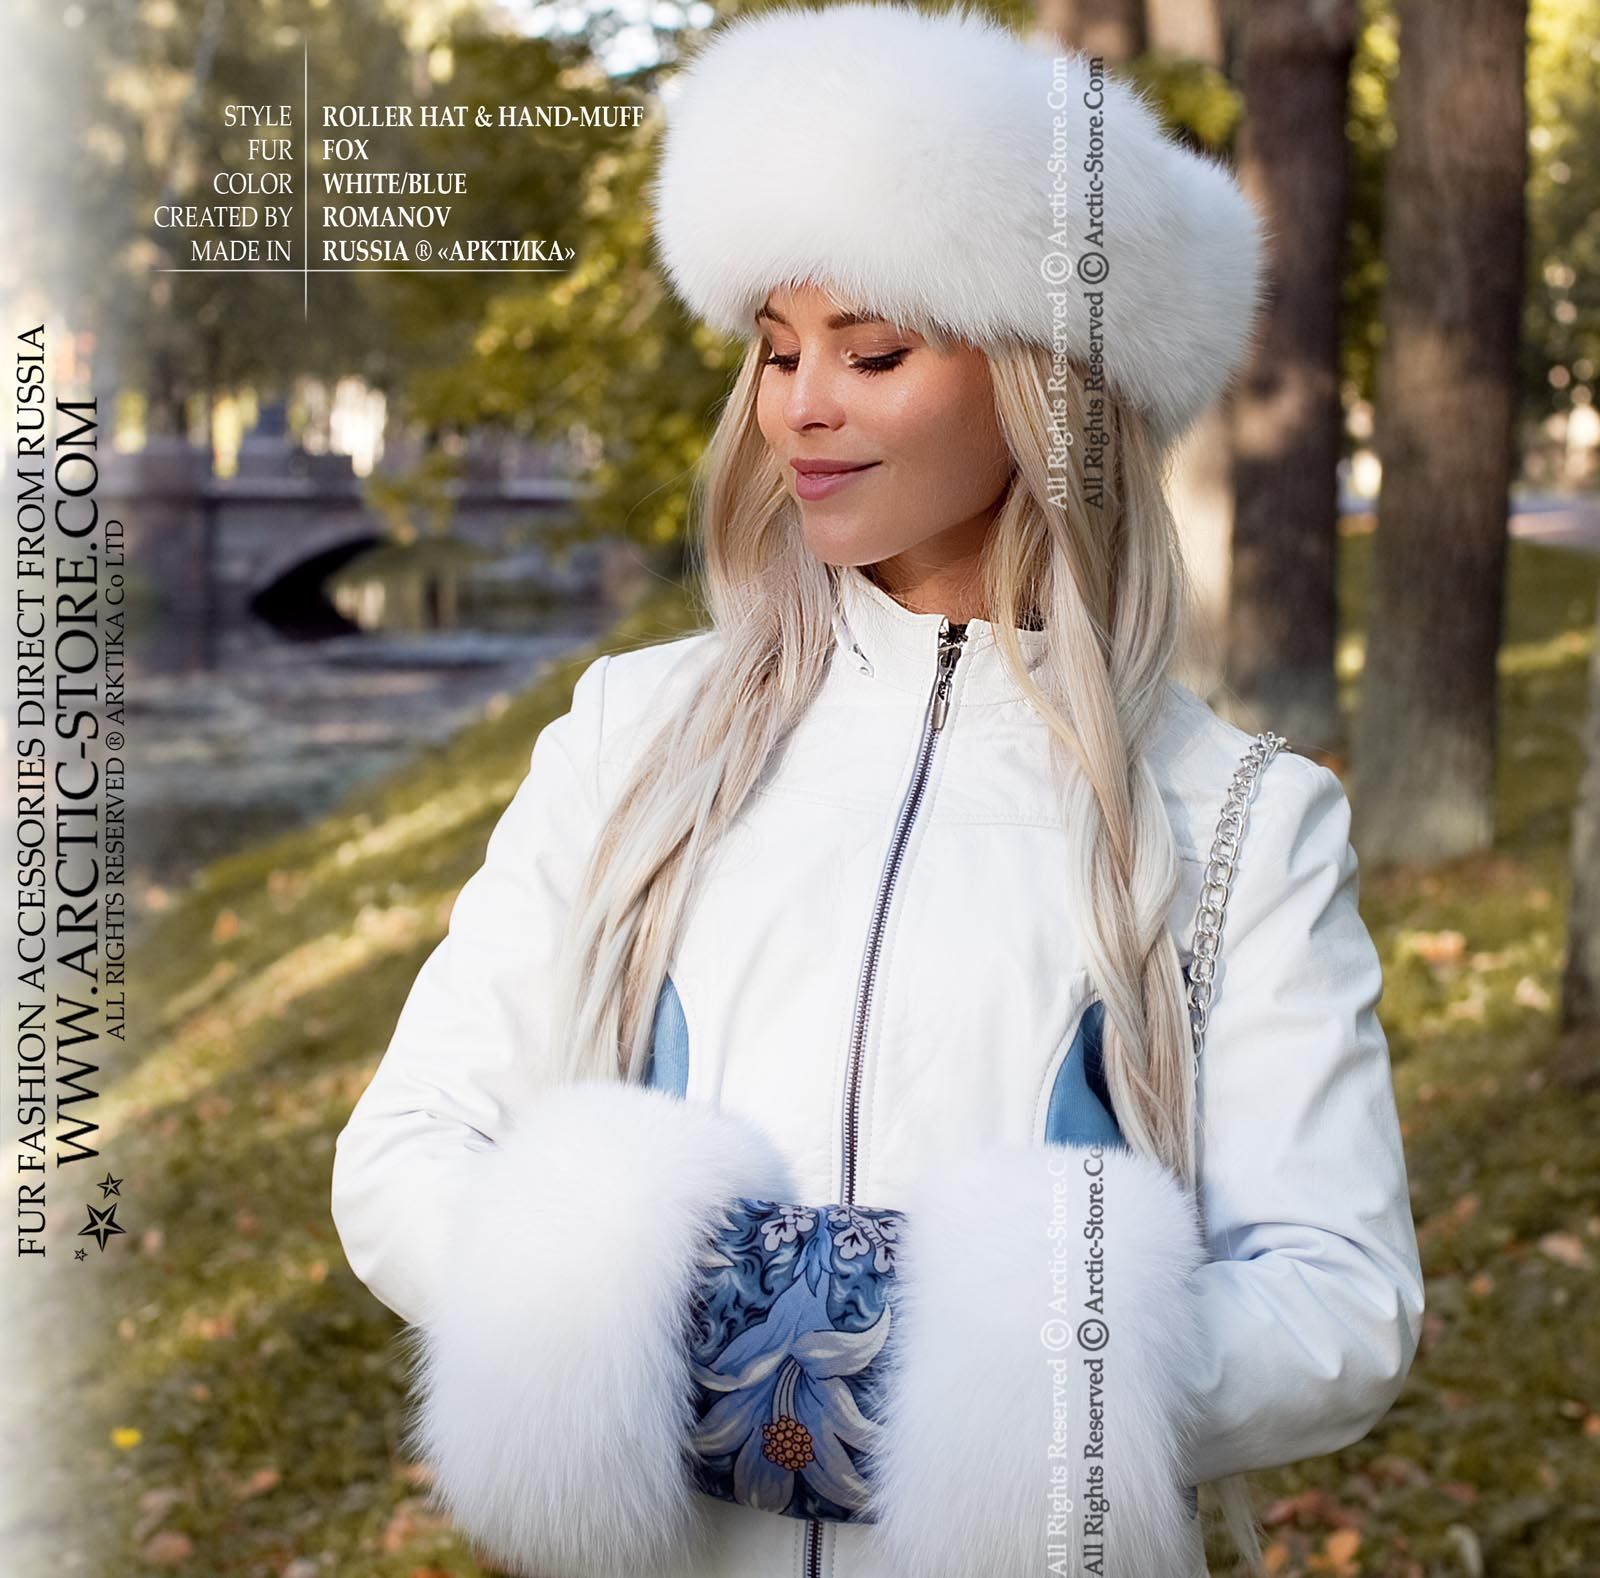 b30272cae82 We present our original Russian set updated with the absolutely White  shadow fox fur and Pavlovo Posad woolen shawl. The Roller model fur hat  features a ...